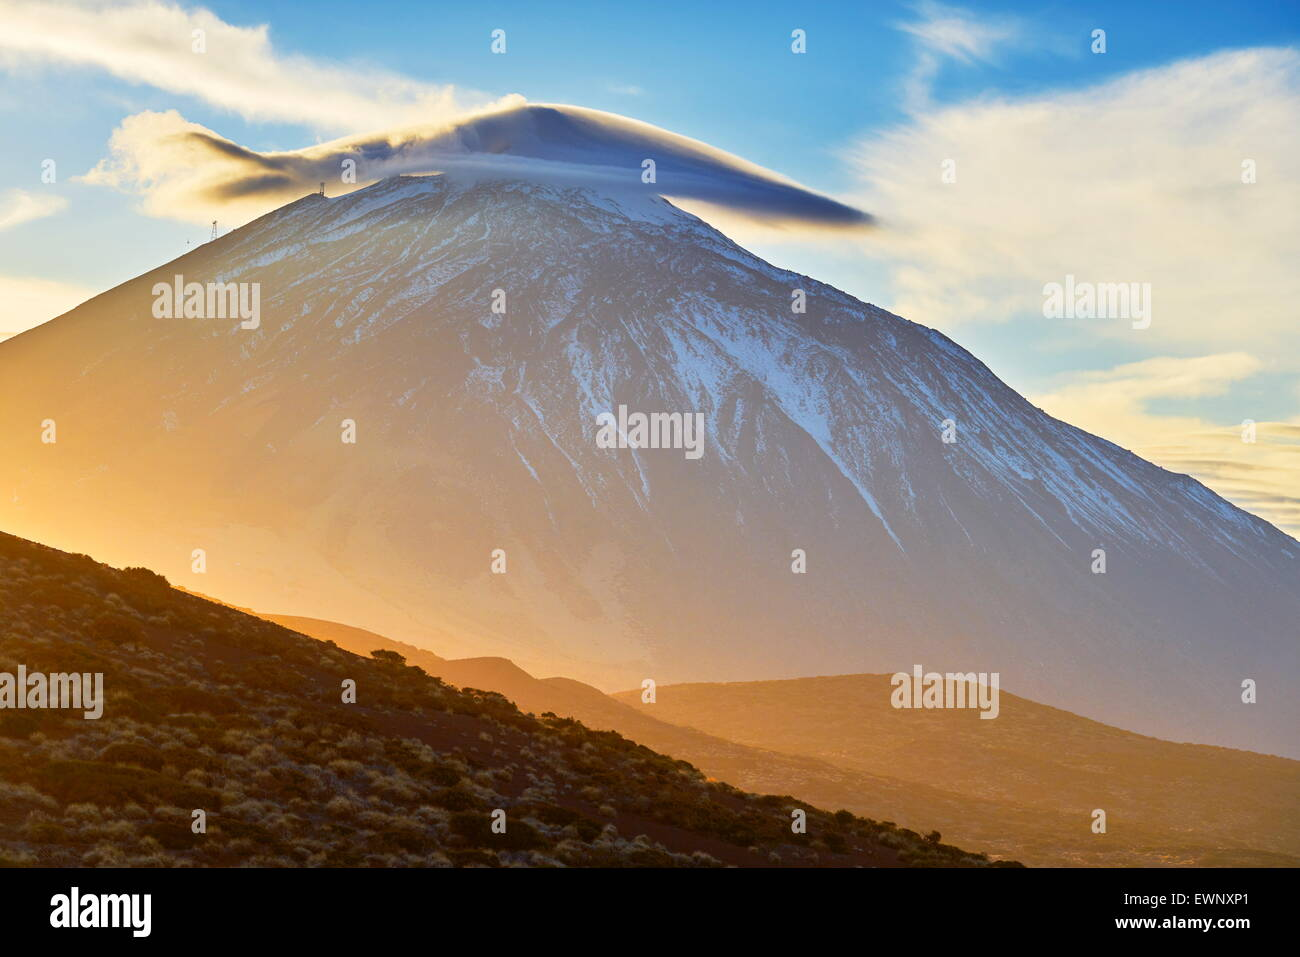 Le Parc National du Teide, Tenerife, Canaries, Espagne Photo Stock